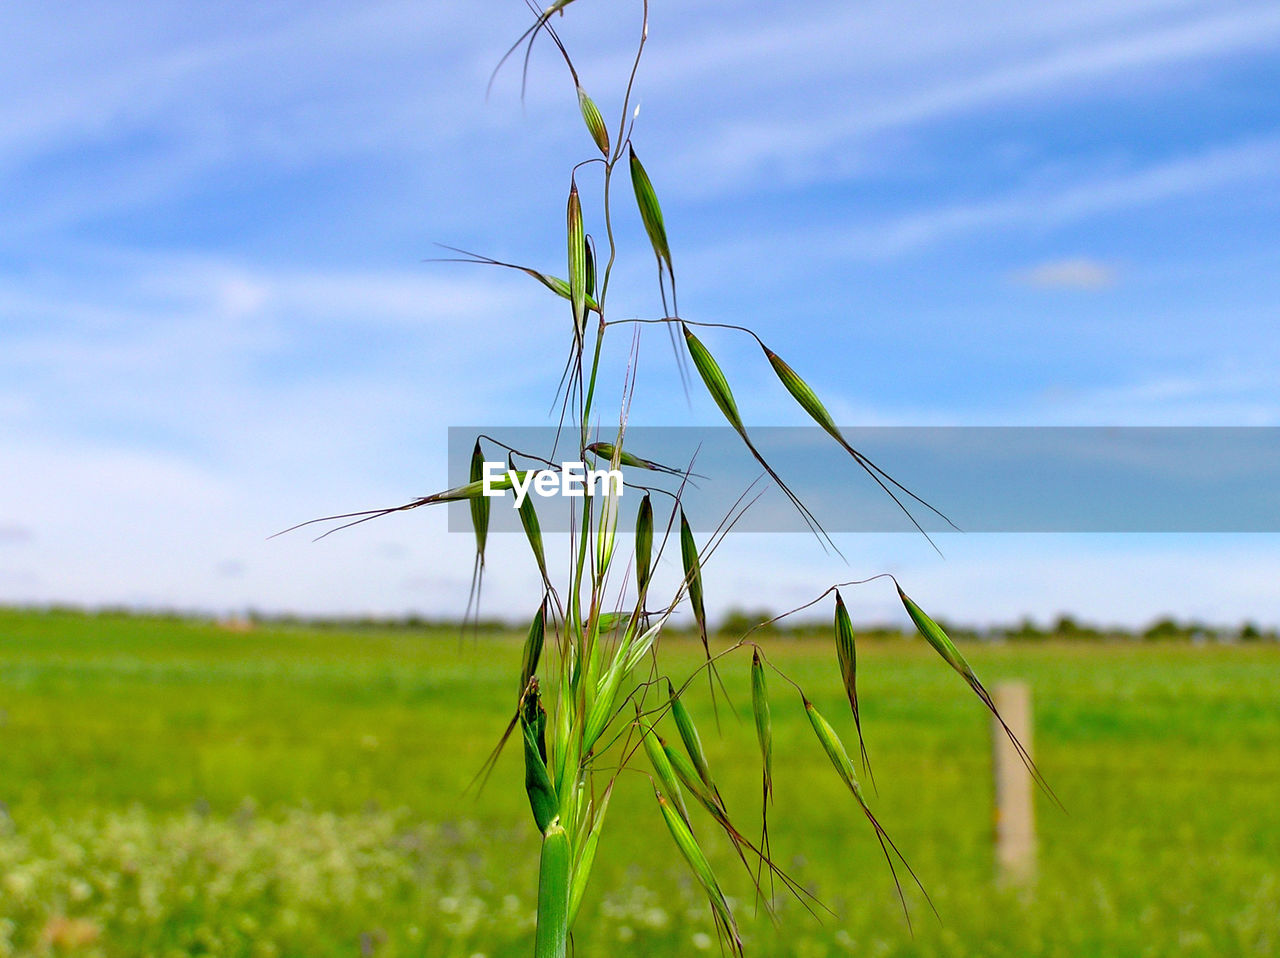 field, nature, agriculture, growth, farm, rural scene, green color, crop, beauty in nature, sky, cultivated land, focus on foreground, tranquility, plant, day, tranquil scene, no people, outdoors, cereal plant, blue, landscape, grass, scenics, close-up, ear of wheat, wheat, freshness